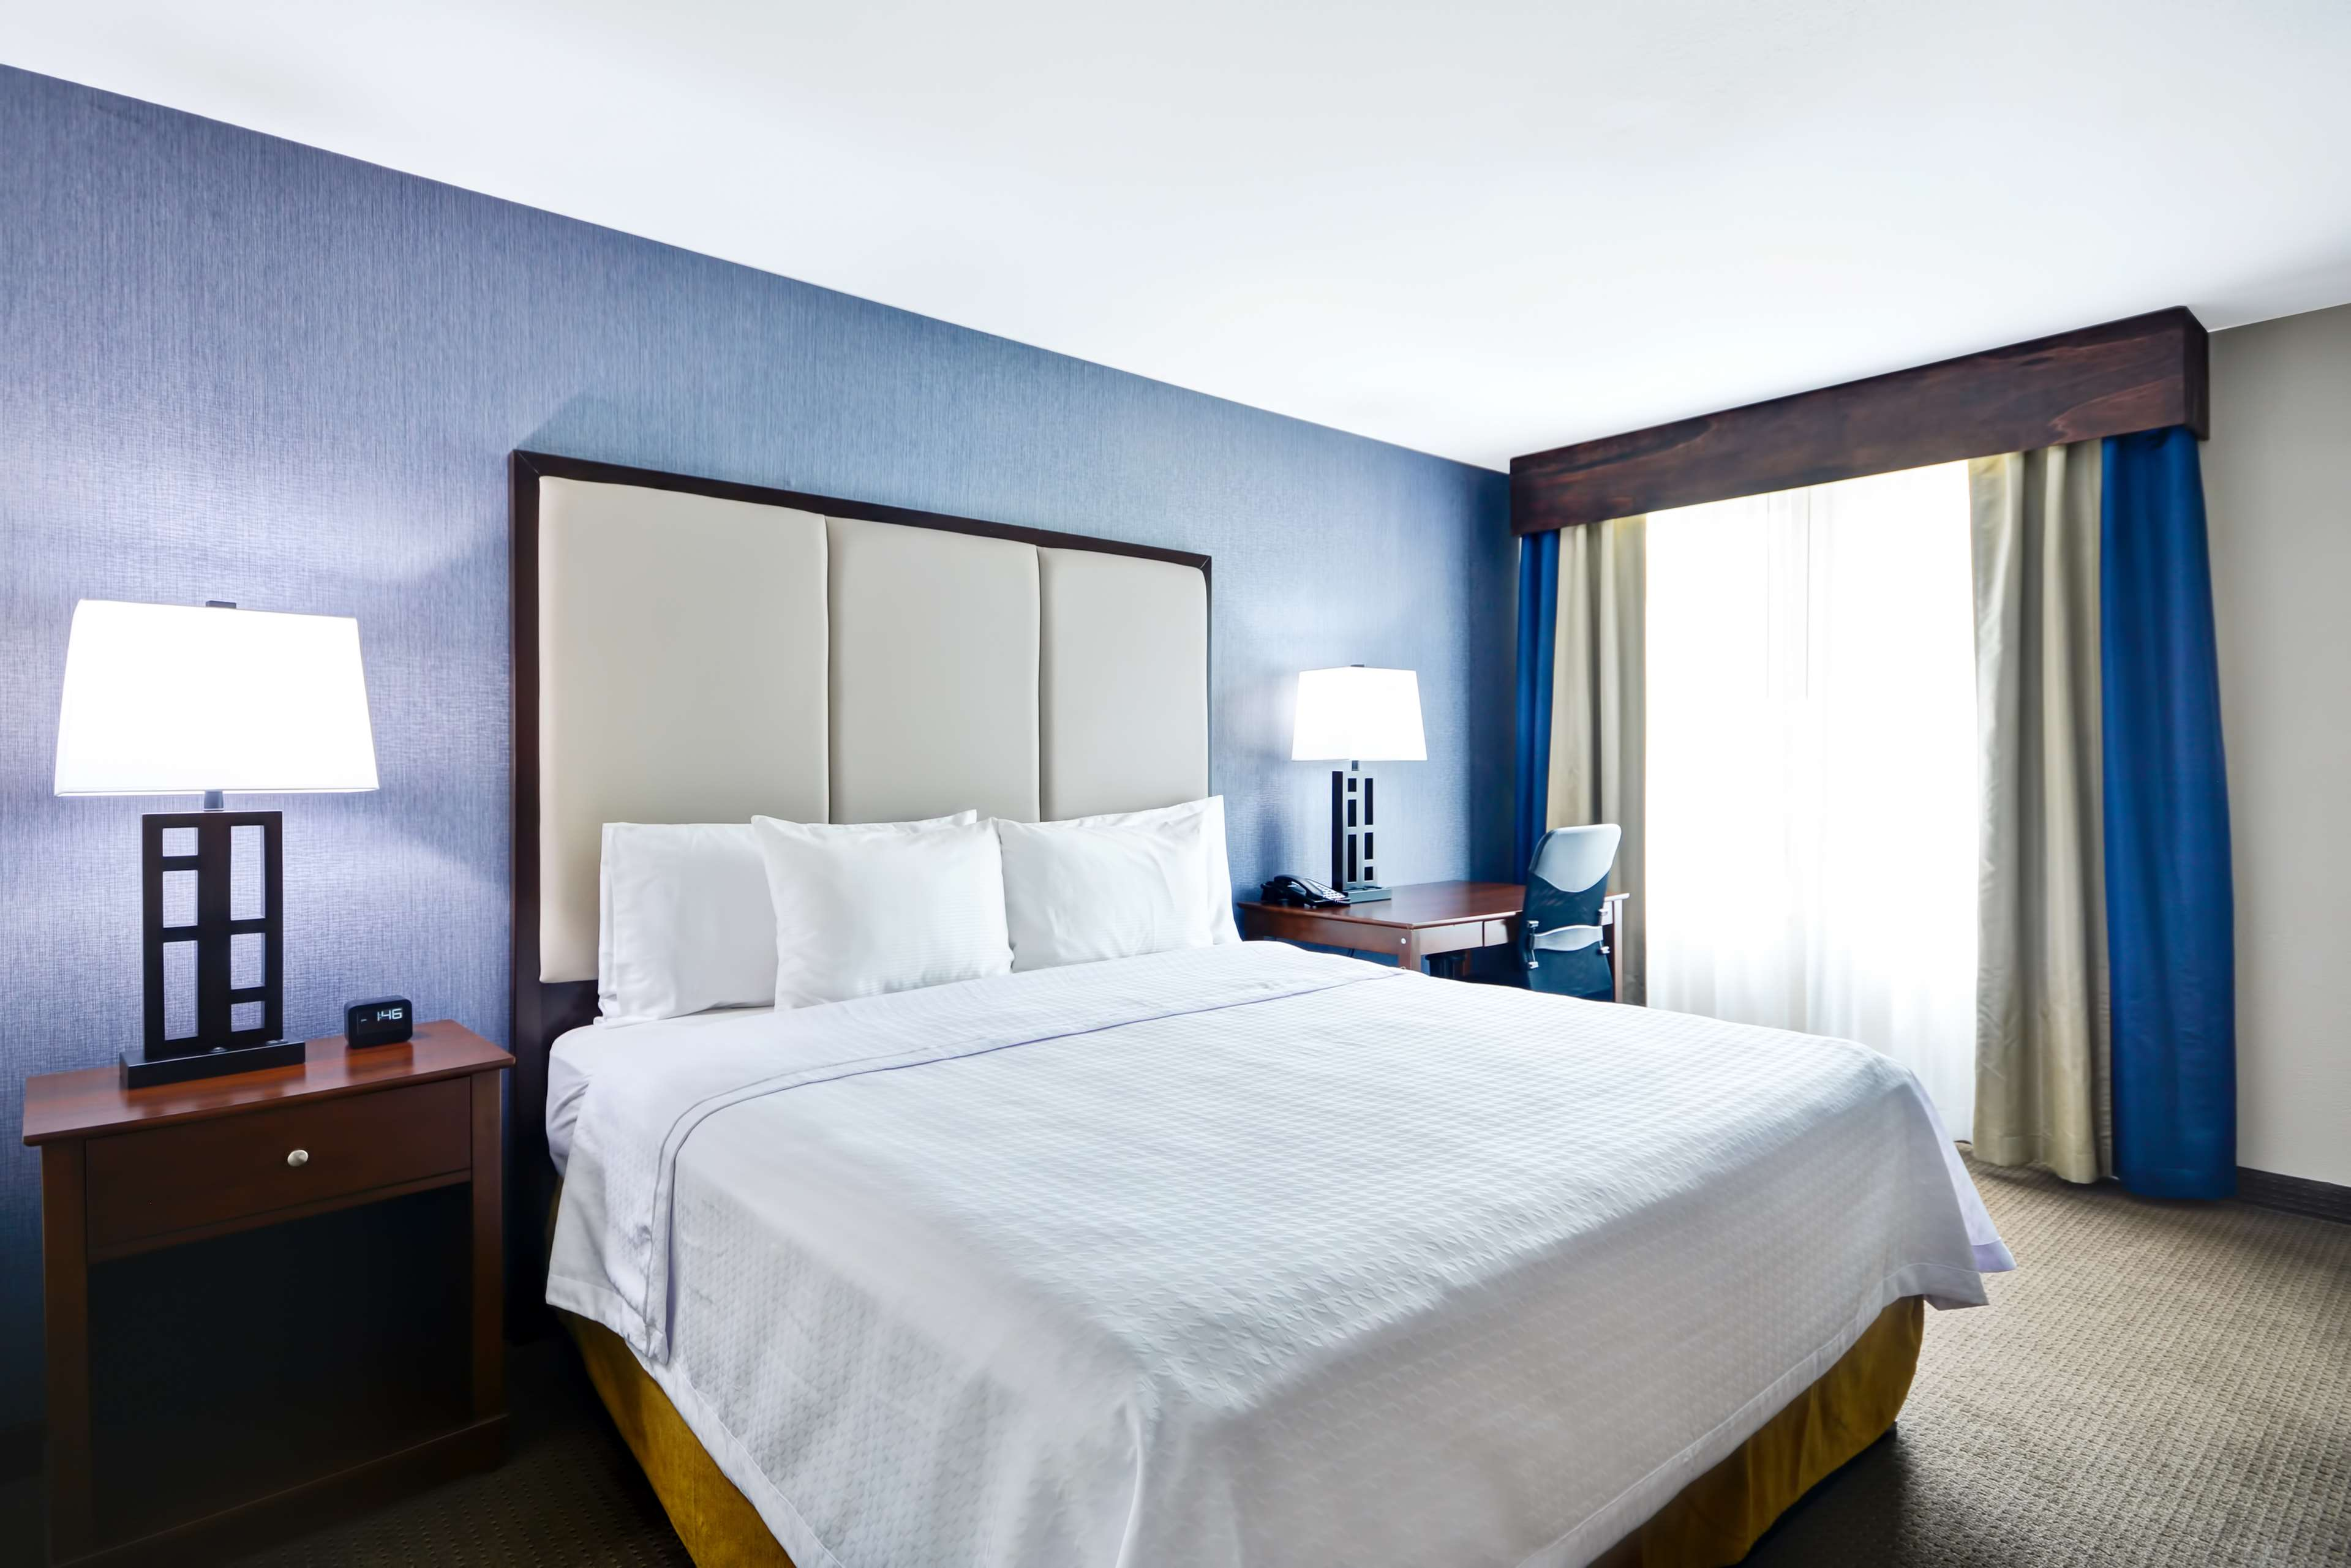 Homewood Suites by Hilton Dallas-Lewisville image 23